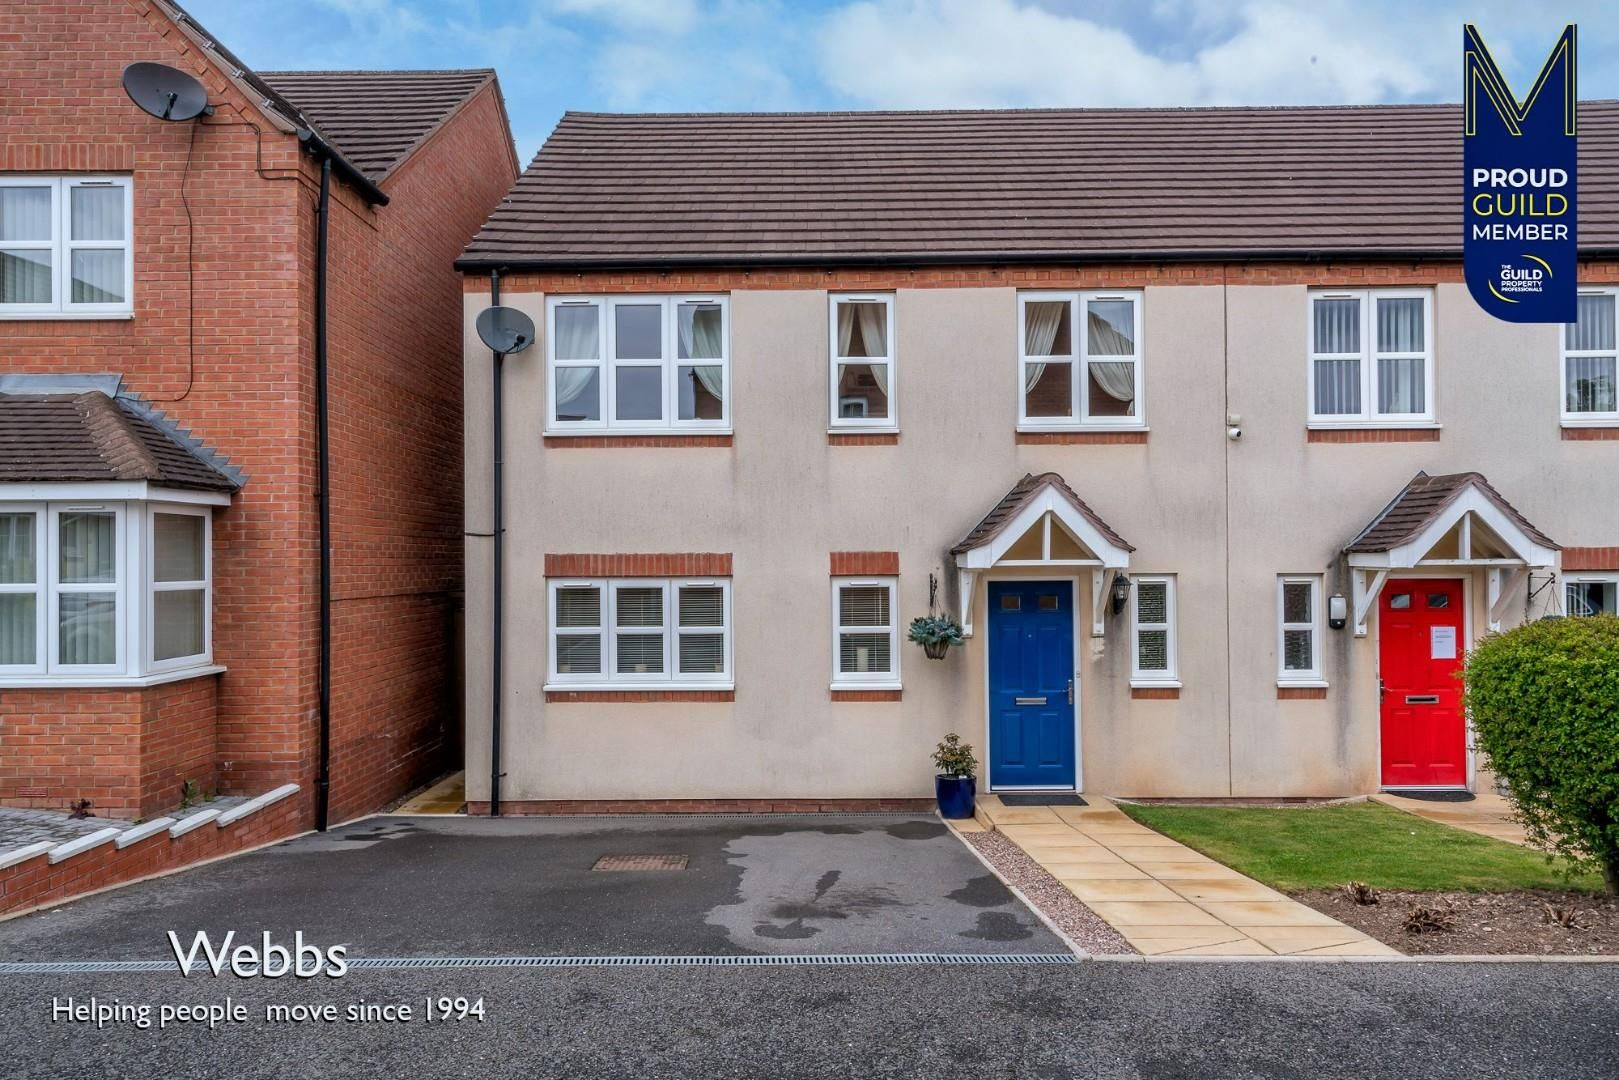 Property photo 1 of 33. 12, Ragstone Close, Walsall, West Midlands, Ws2 8T